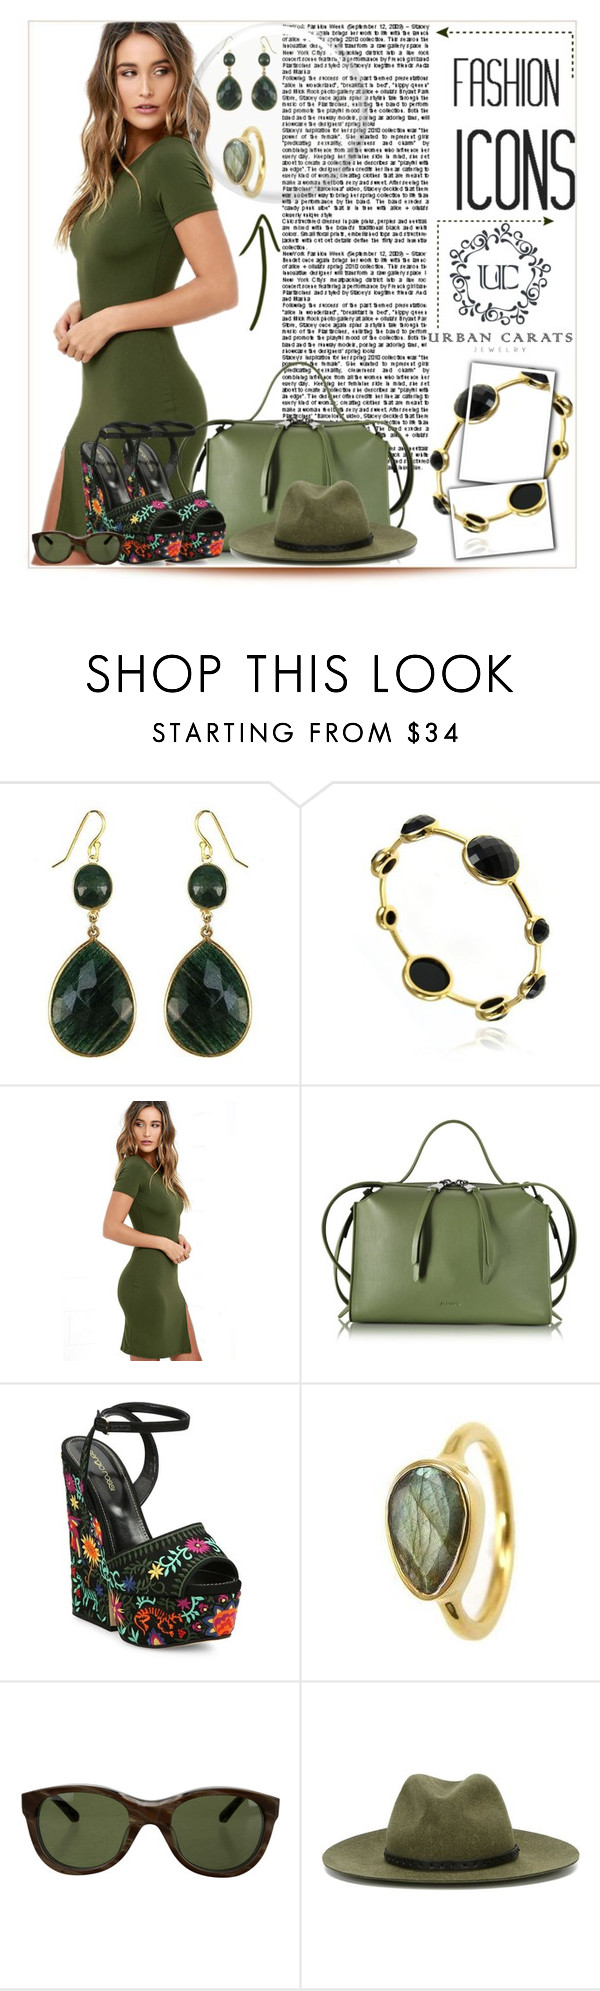 """URBAN CARATS JEWELRY"" by purplerose27 ❤ liked on Polyvore featuring LULUS, Jil Sander, Sergio Rossi, Linda Farrow, rag & bone and urbancarats"